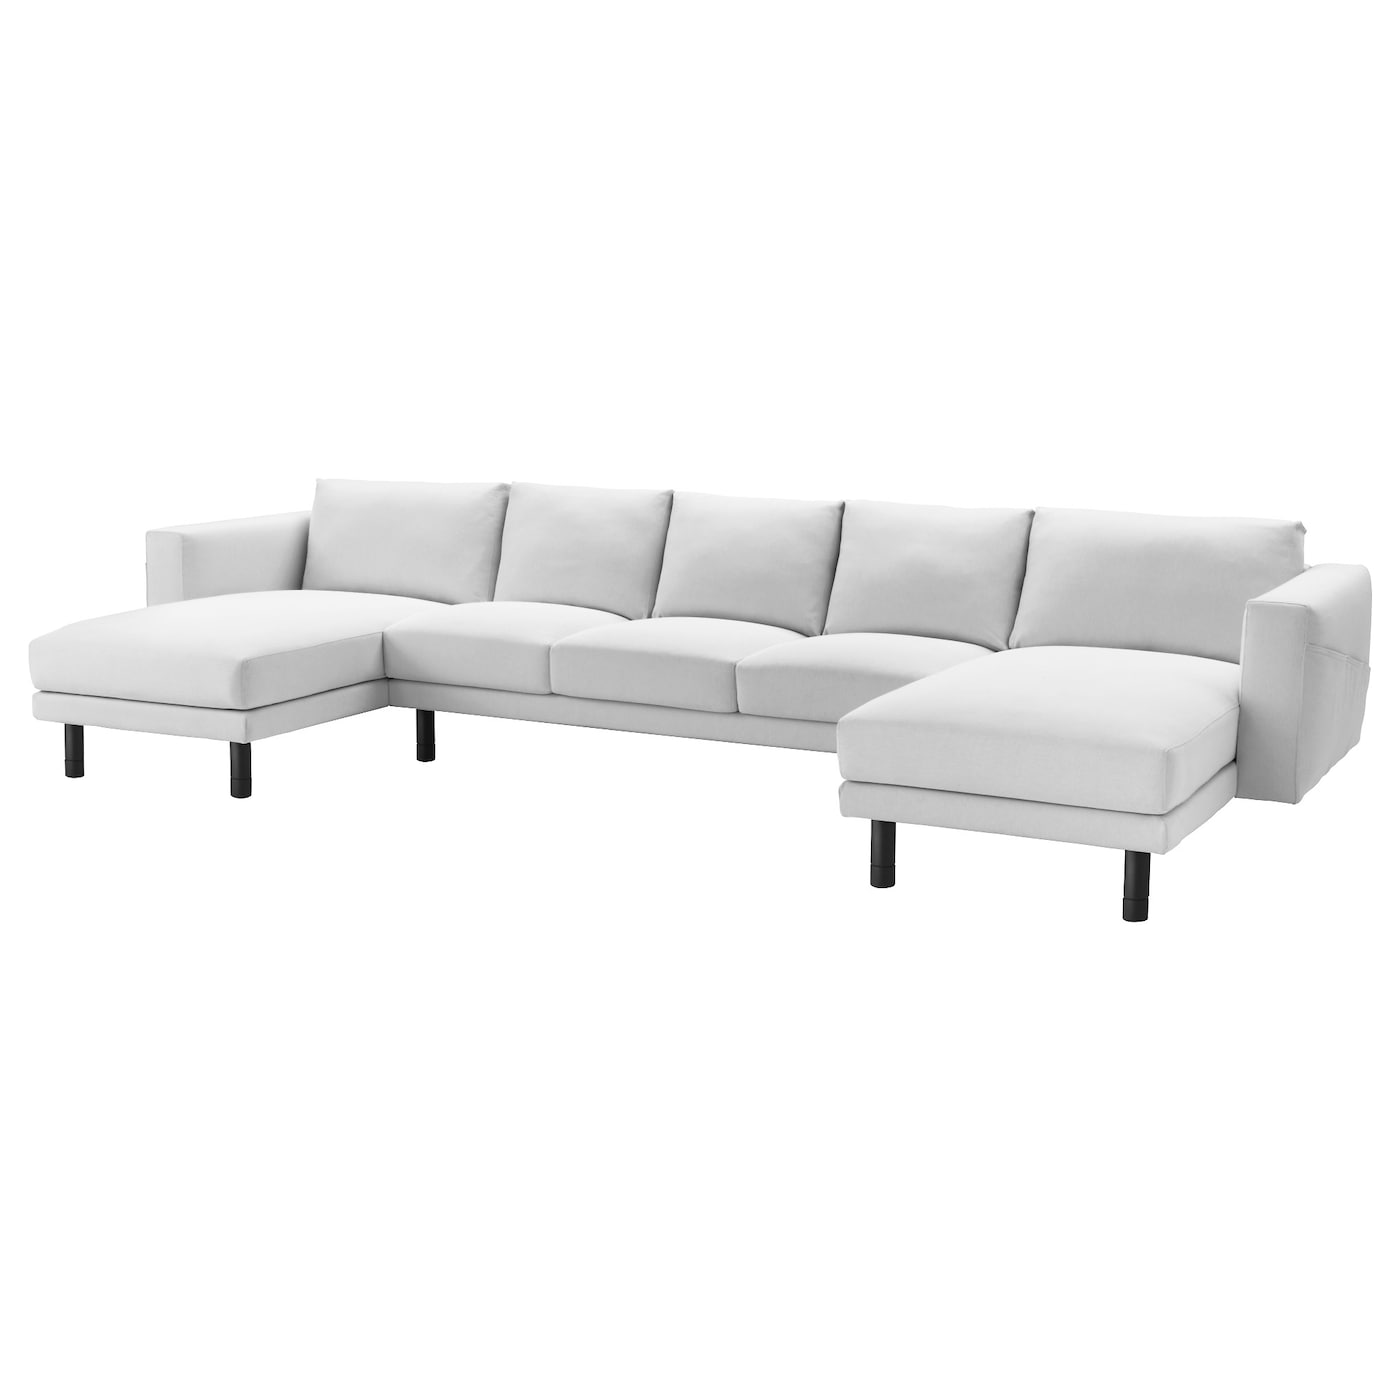 norsborg 3 seat sofa with 2 chaise longues finnsta white